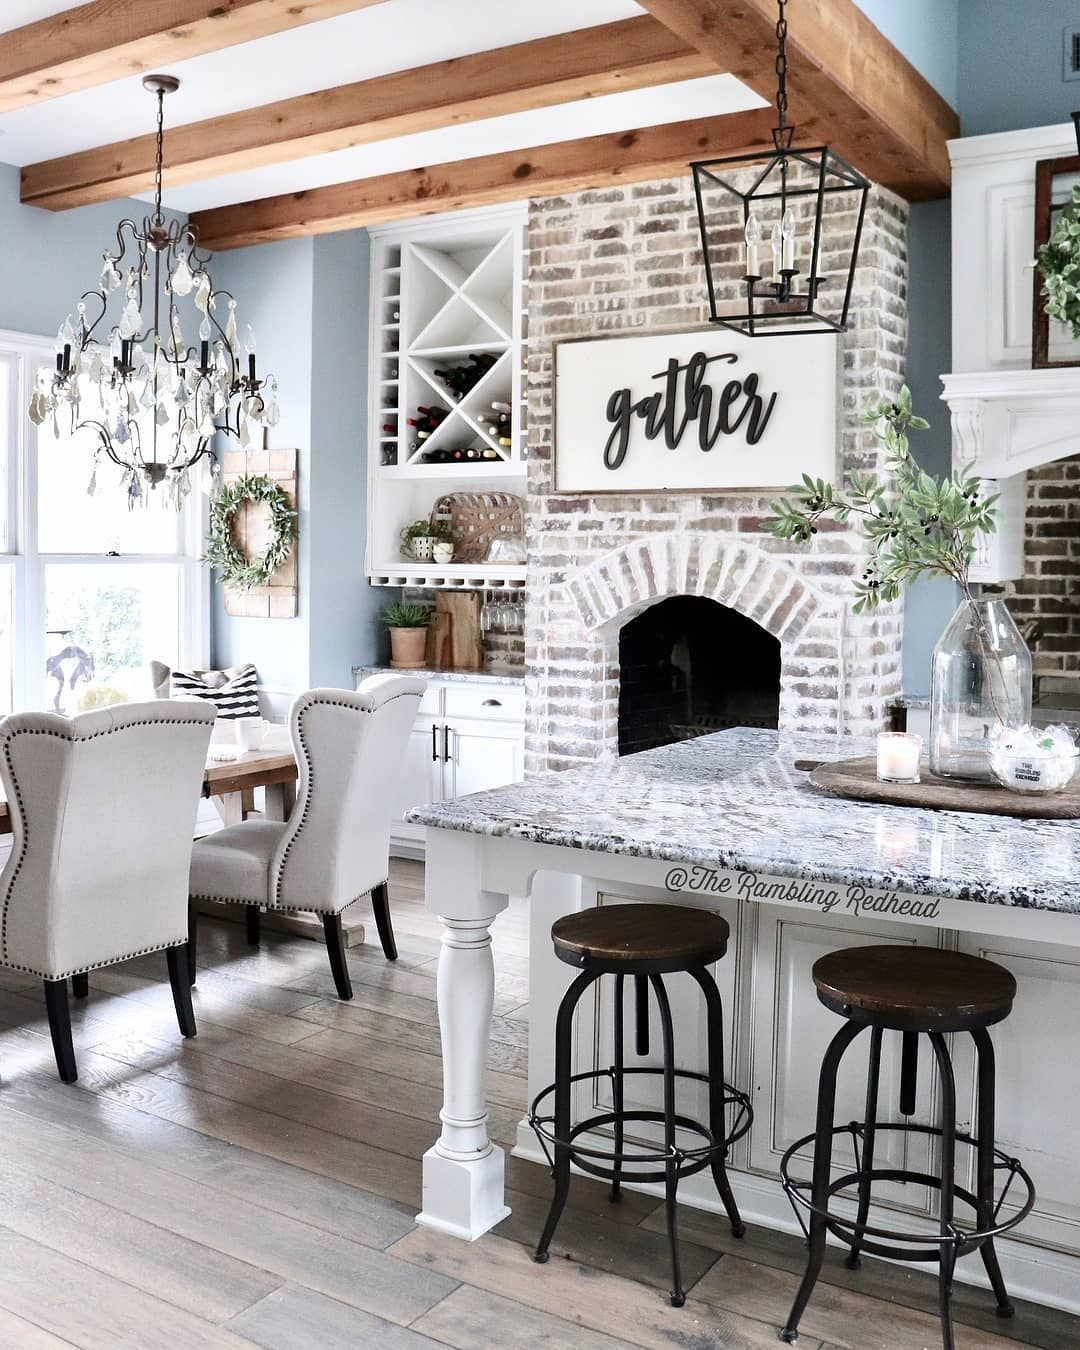 This modern farmhouse is absolutely beautiful! ️ What do